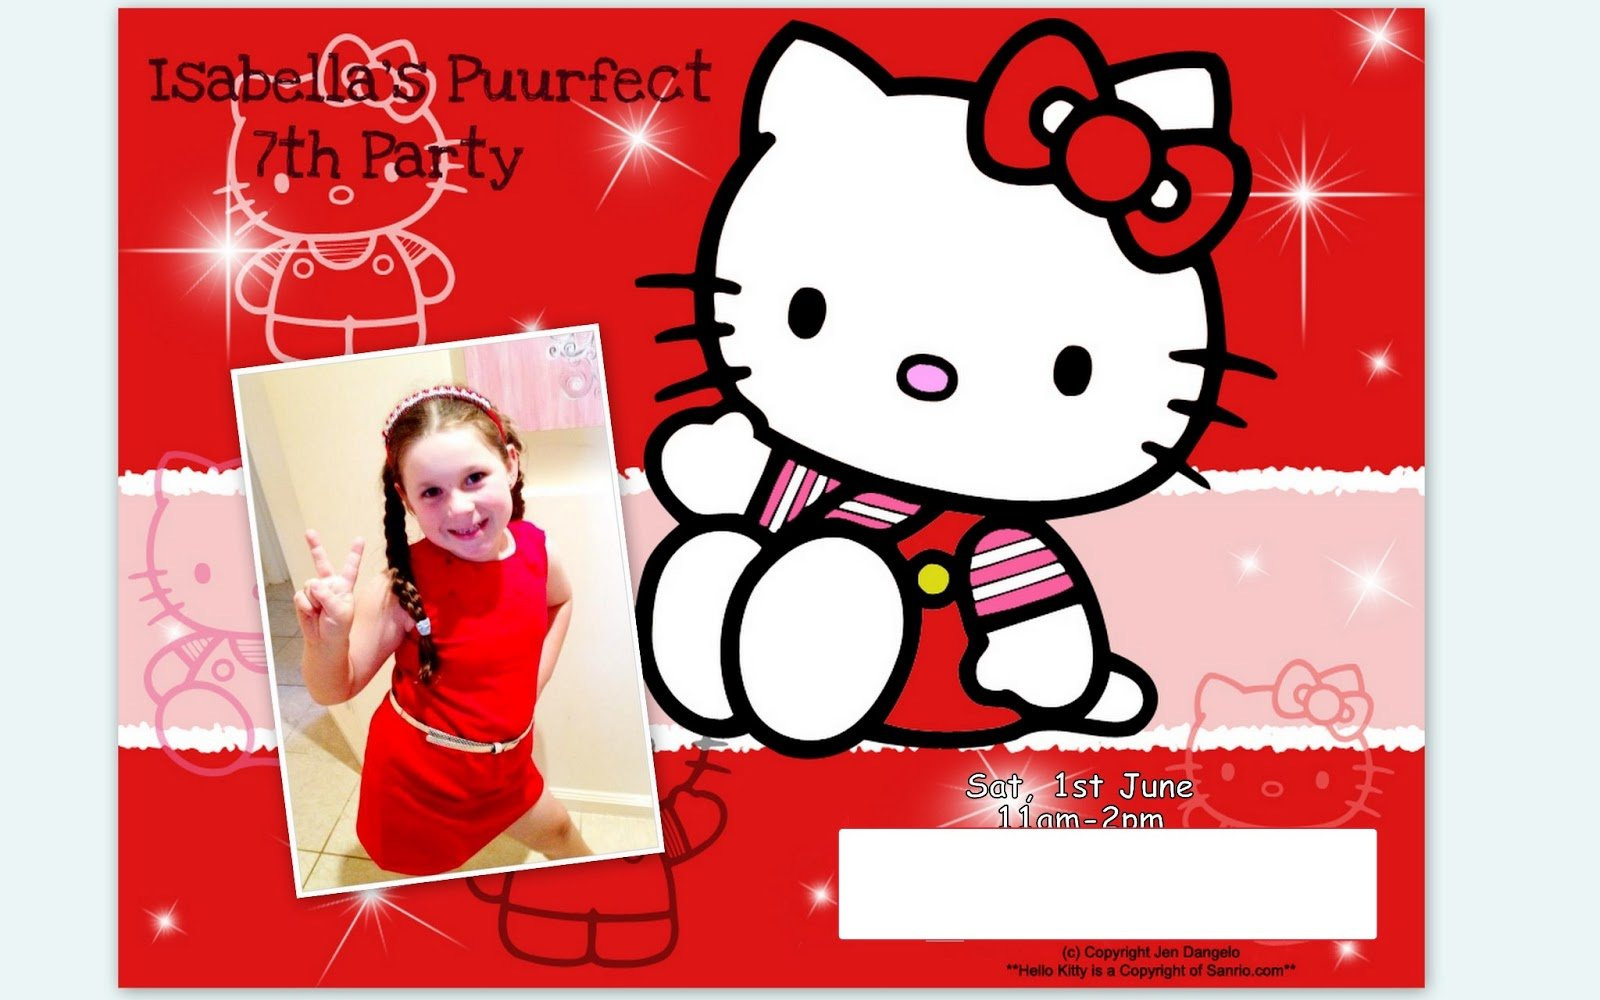 One Mummy's Musings  Isabella's Hello Kitty 7th Birthday Party